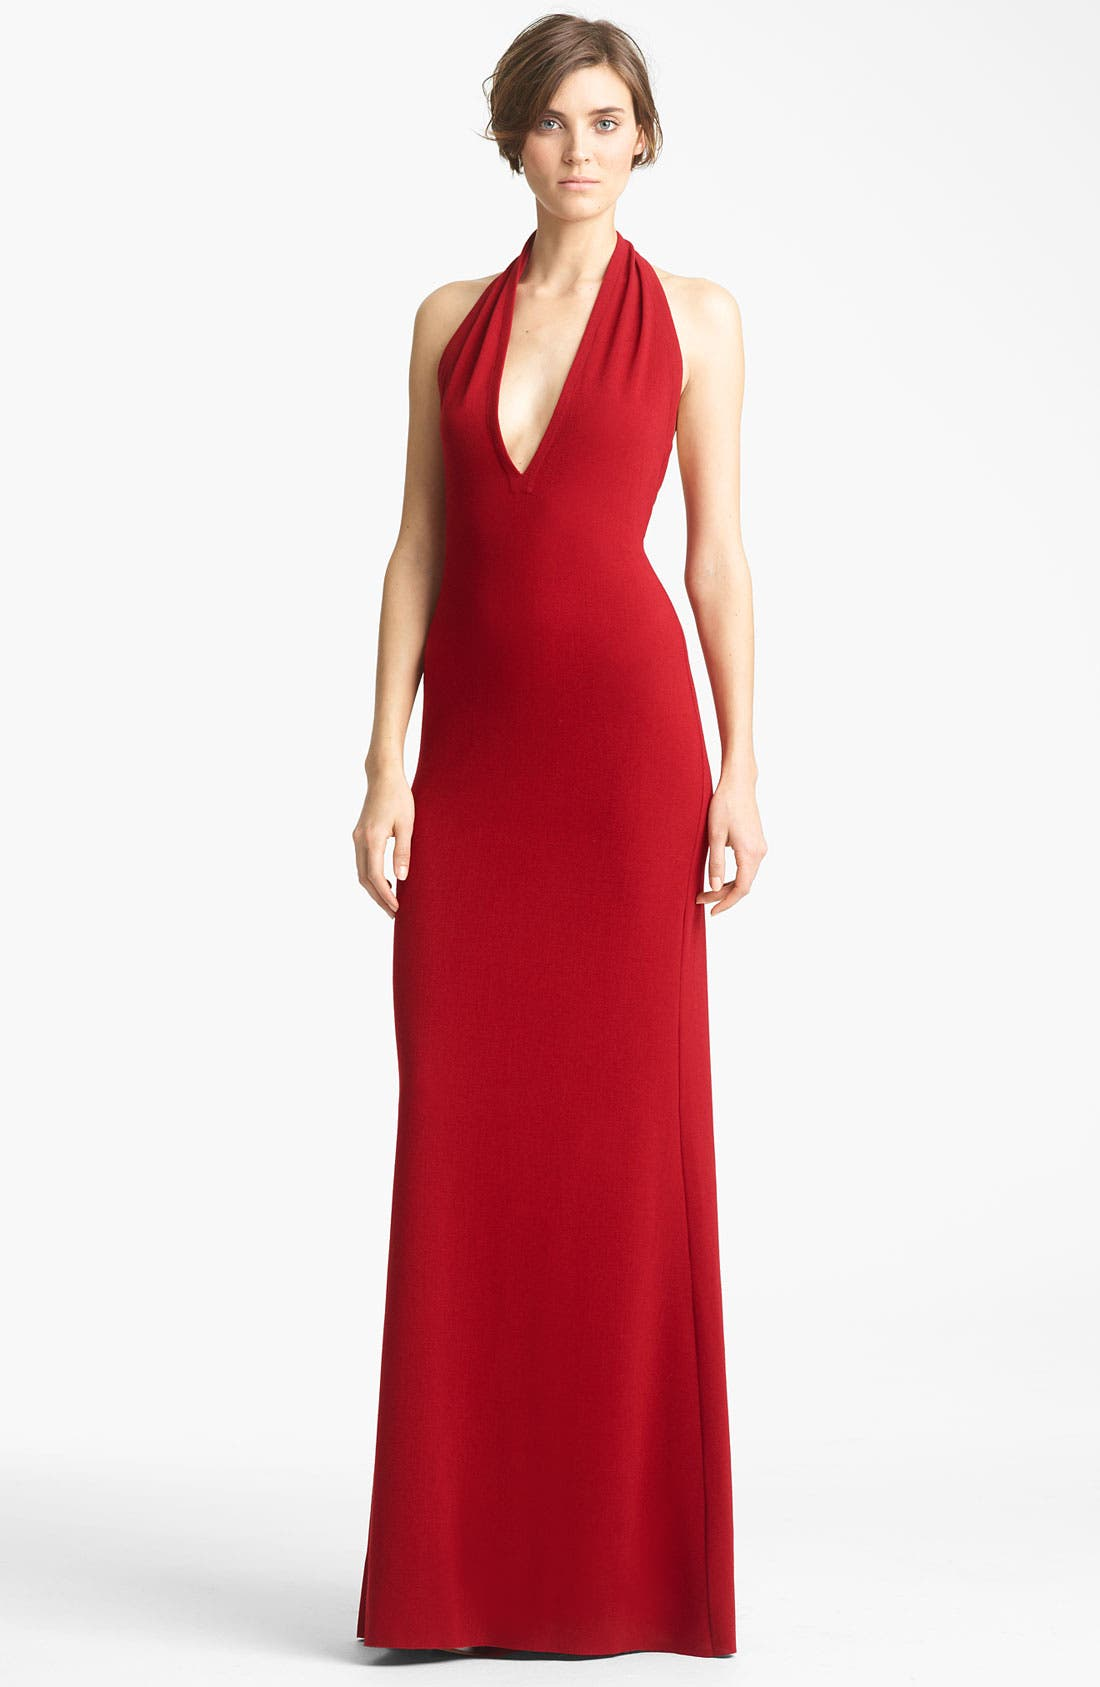 Alternate Image 1 Selected - Yigal Azrouël Crepe Halter Gown